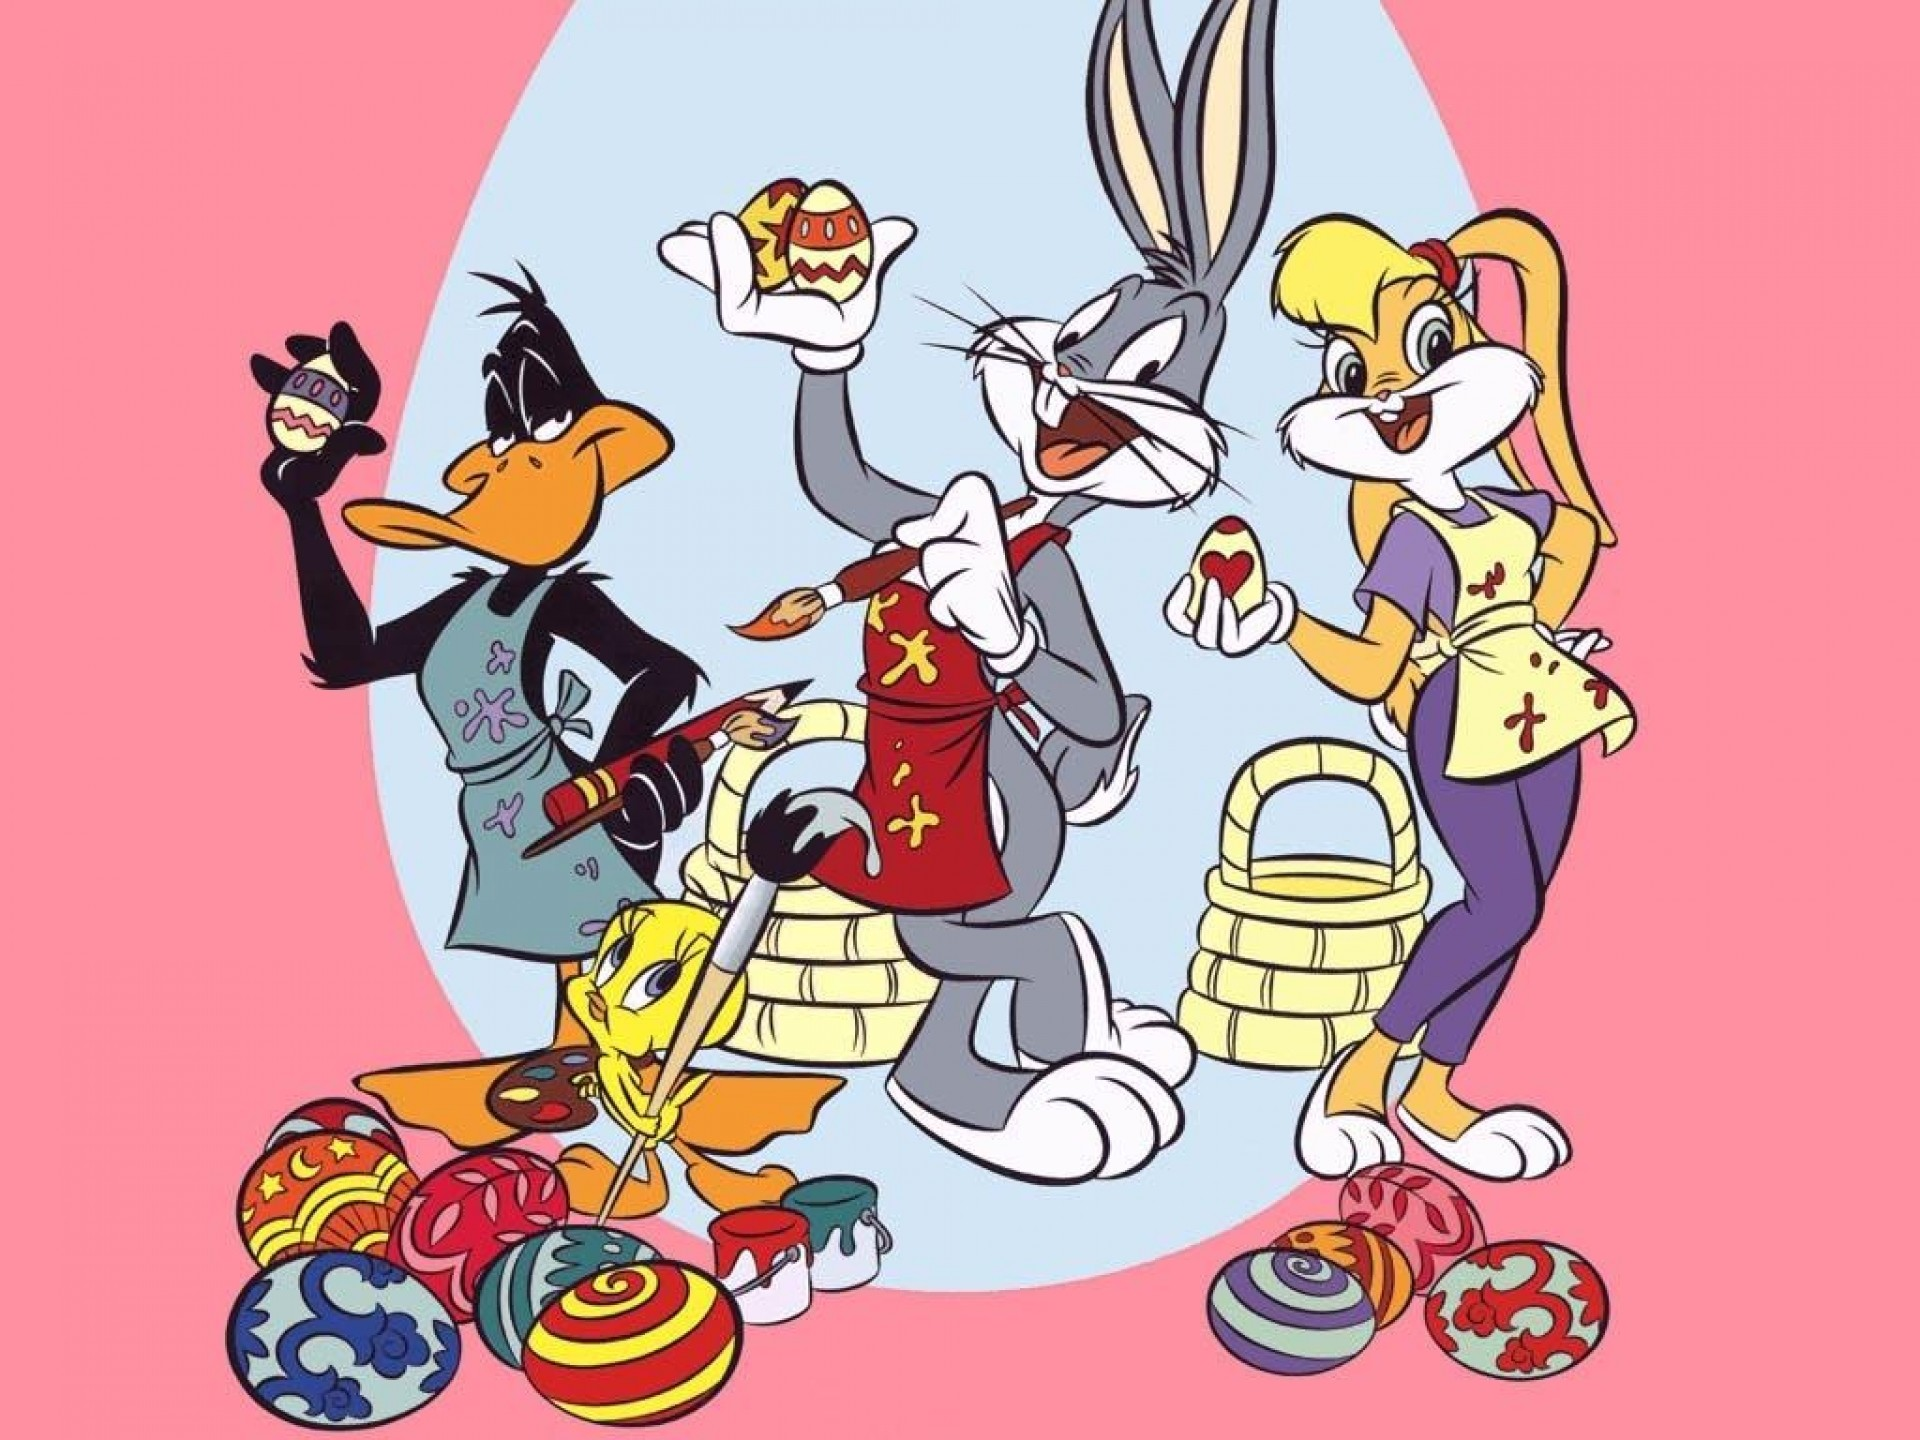 Res: 1920x1440, BUGS BUNNY looney tunes easter g wallpaper |  | 160667 |  WallpaperUP